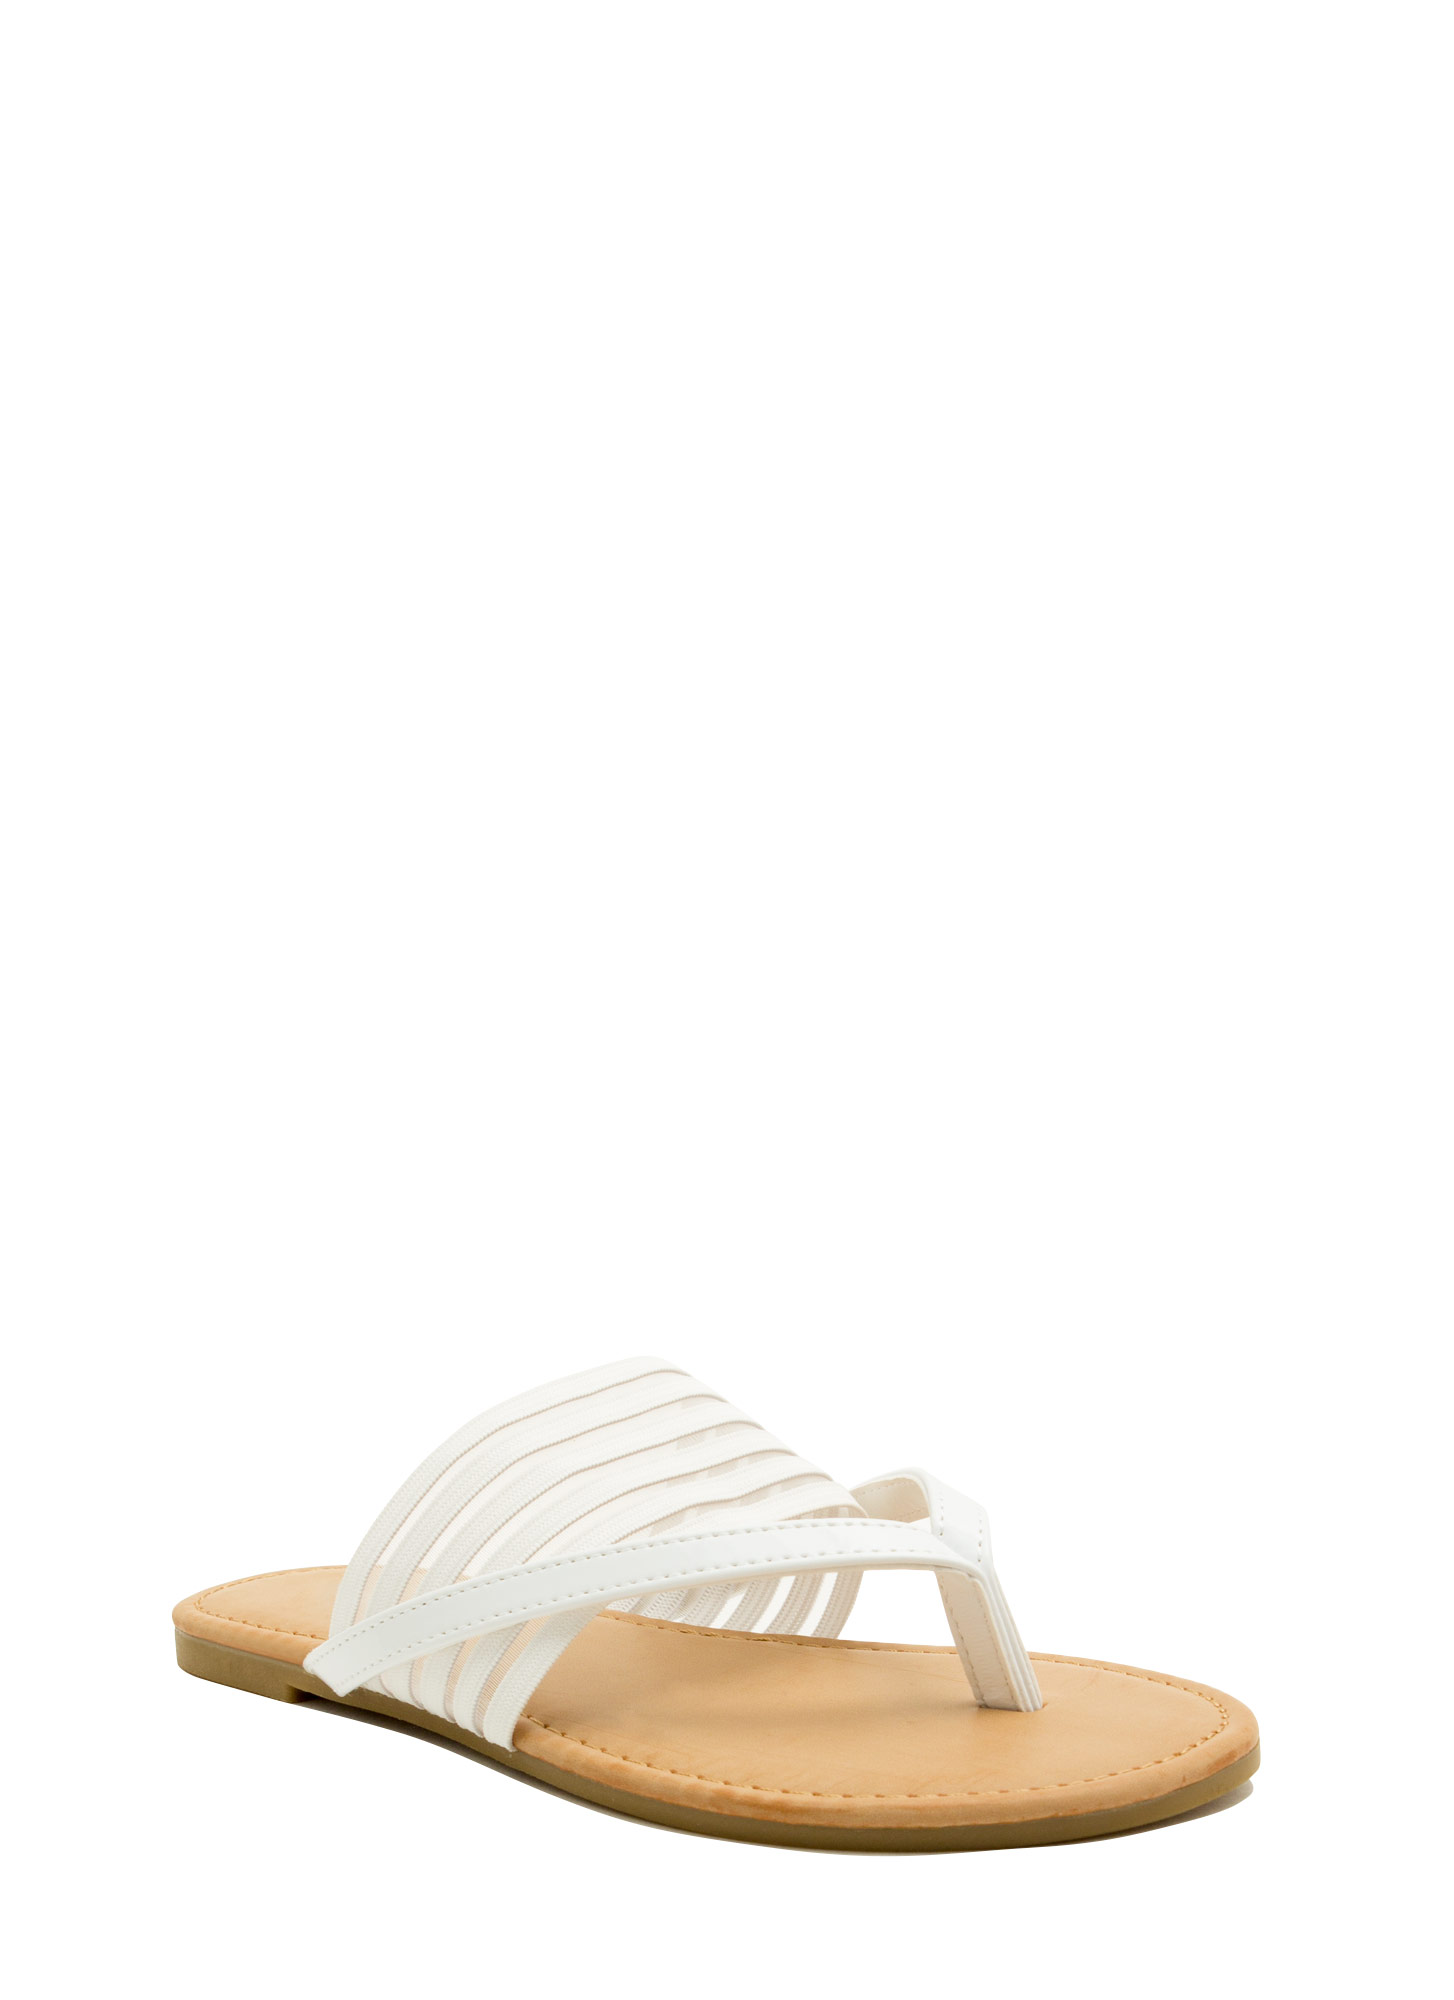 Show Ur Stripes Thong Sandals WHITE